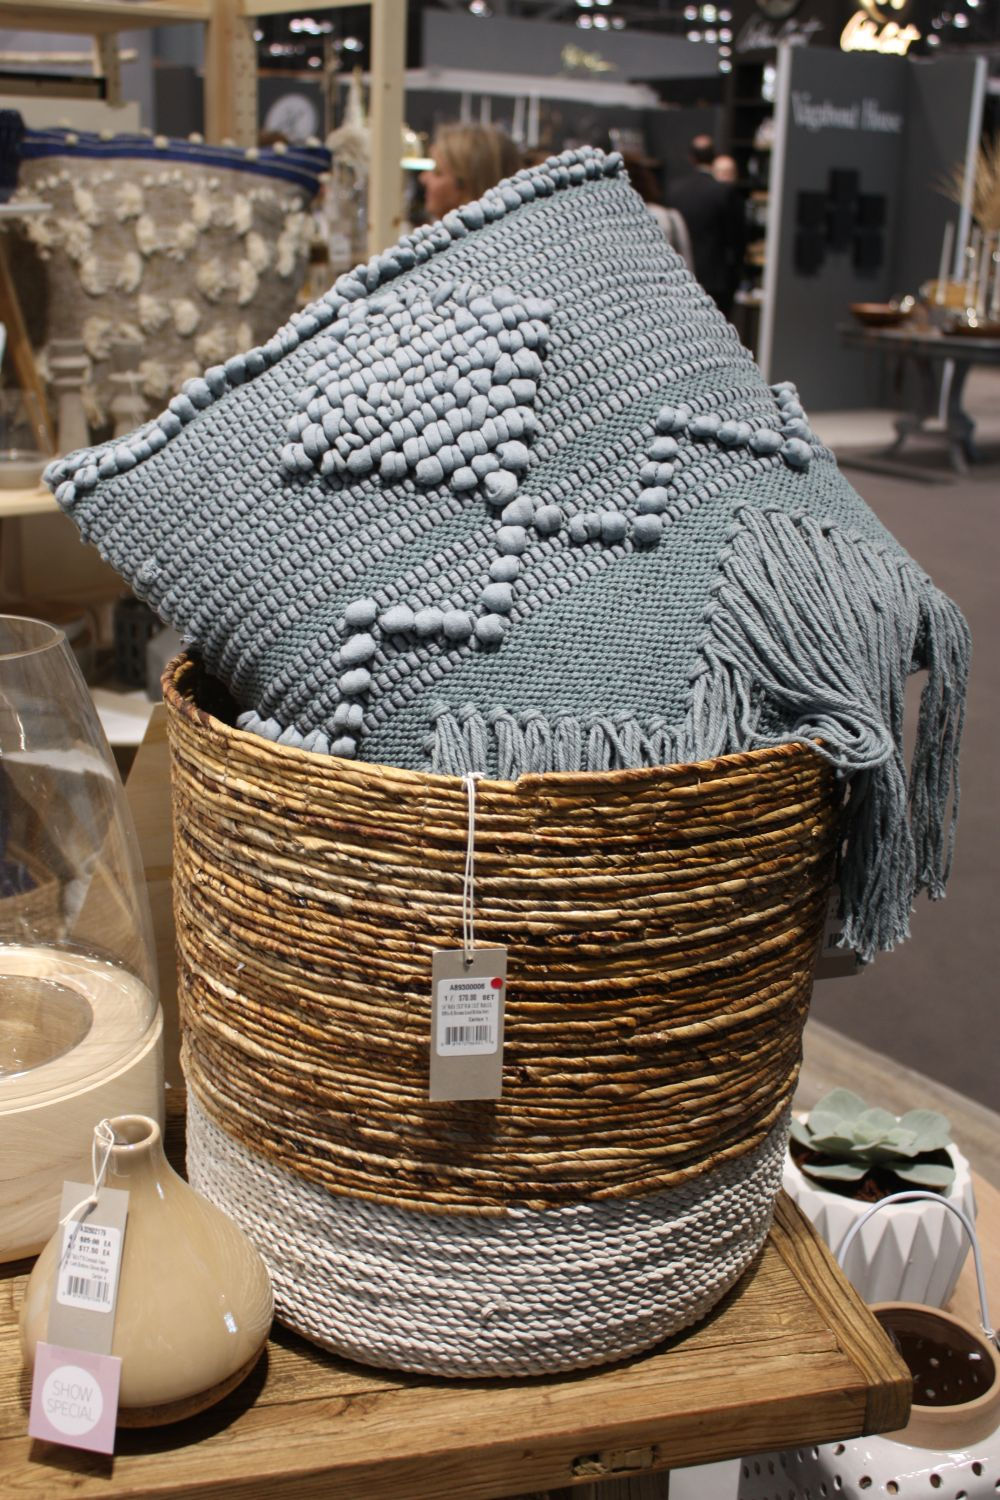 Wicker Baskets - Incredibly Versatile And Practical Even Today